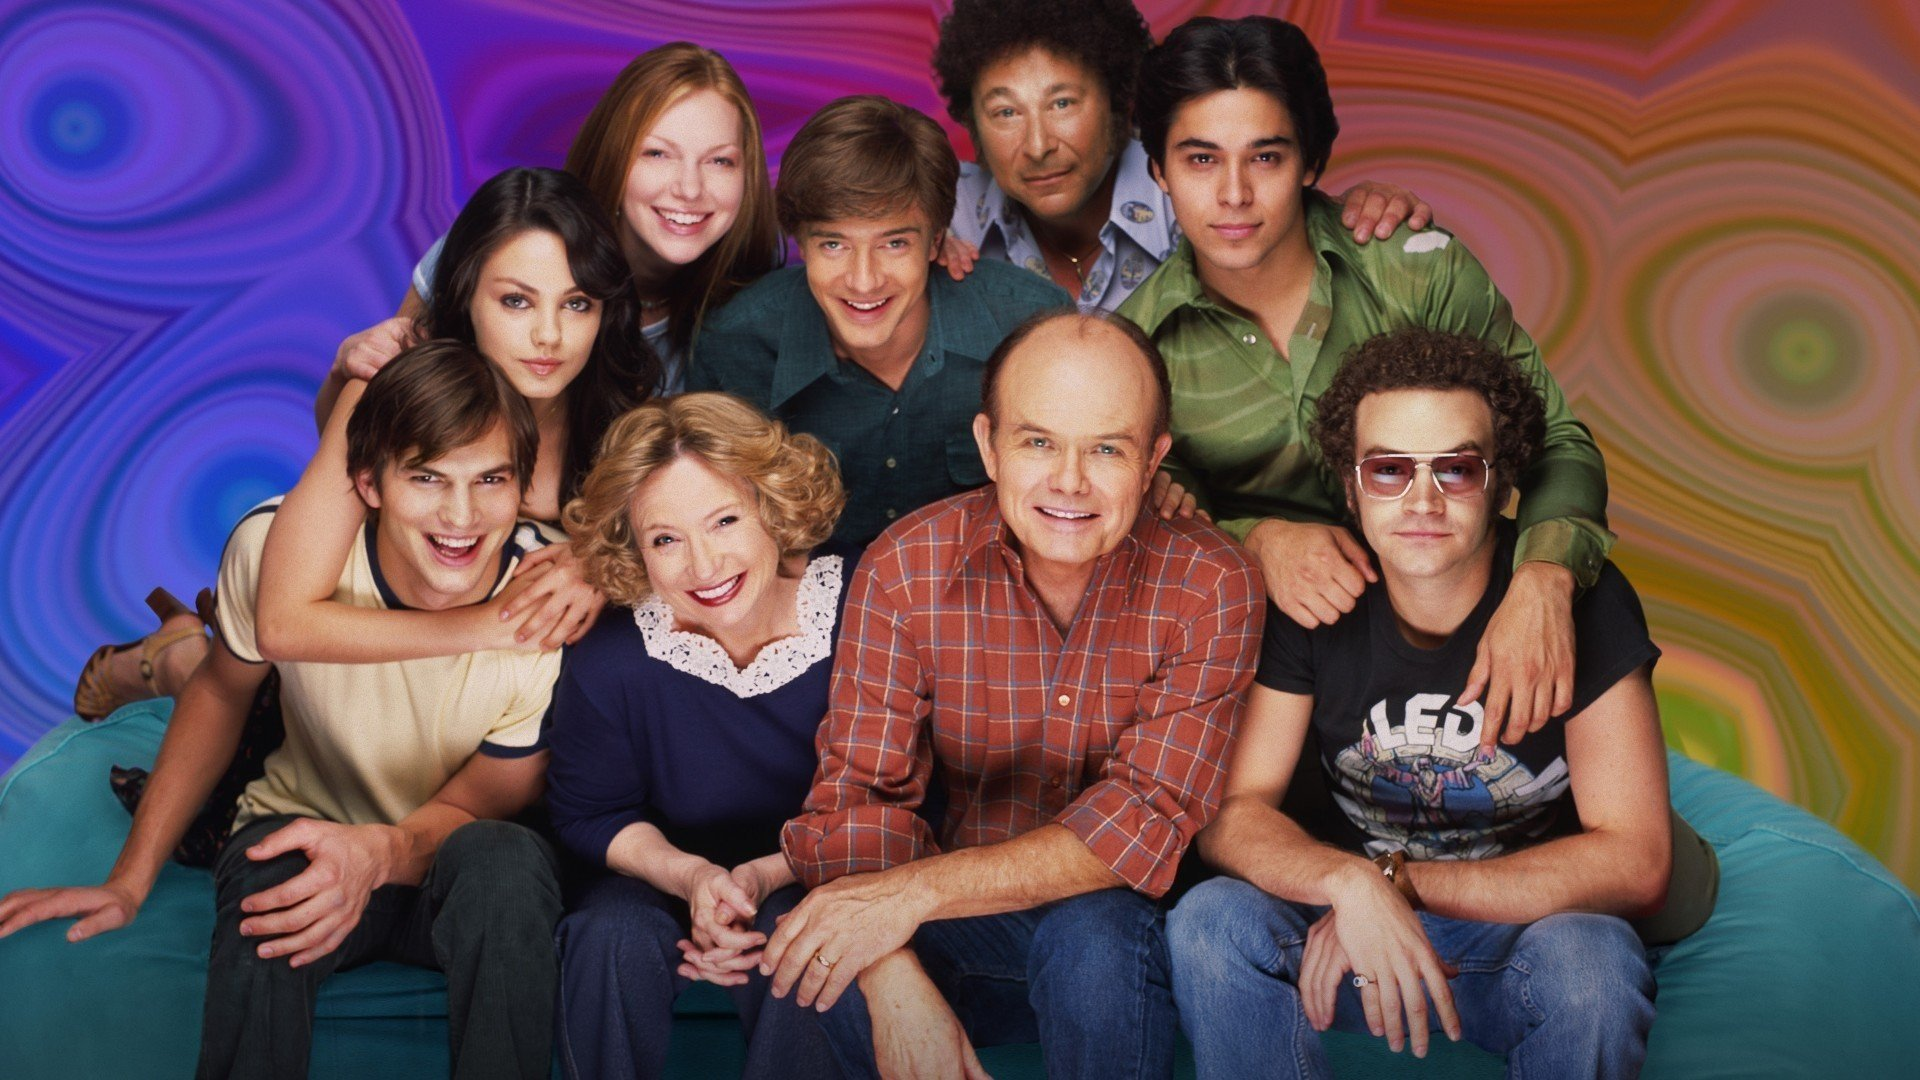 TV Show - That '70s Show  That 70's Show Danny Masterson Steven Hyde Laura Prepon Donna Pinciotti Kurtwood Smith Debra Jo Rupp Kitty Forman Ashton Kutcher Wallpaper